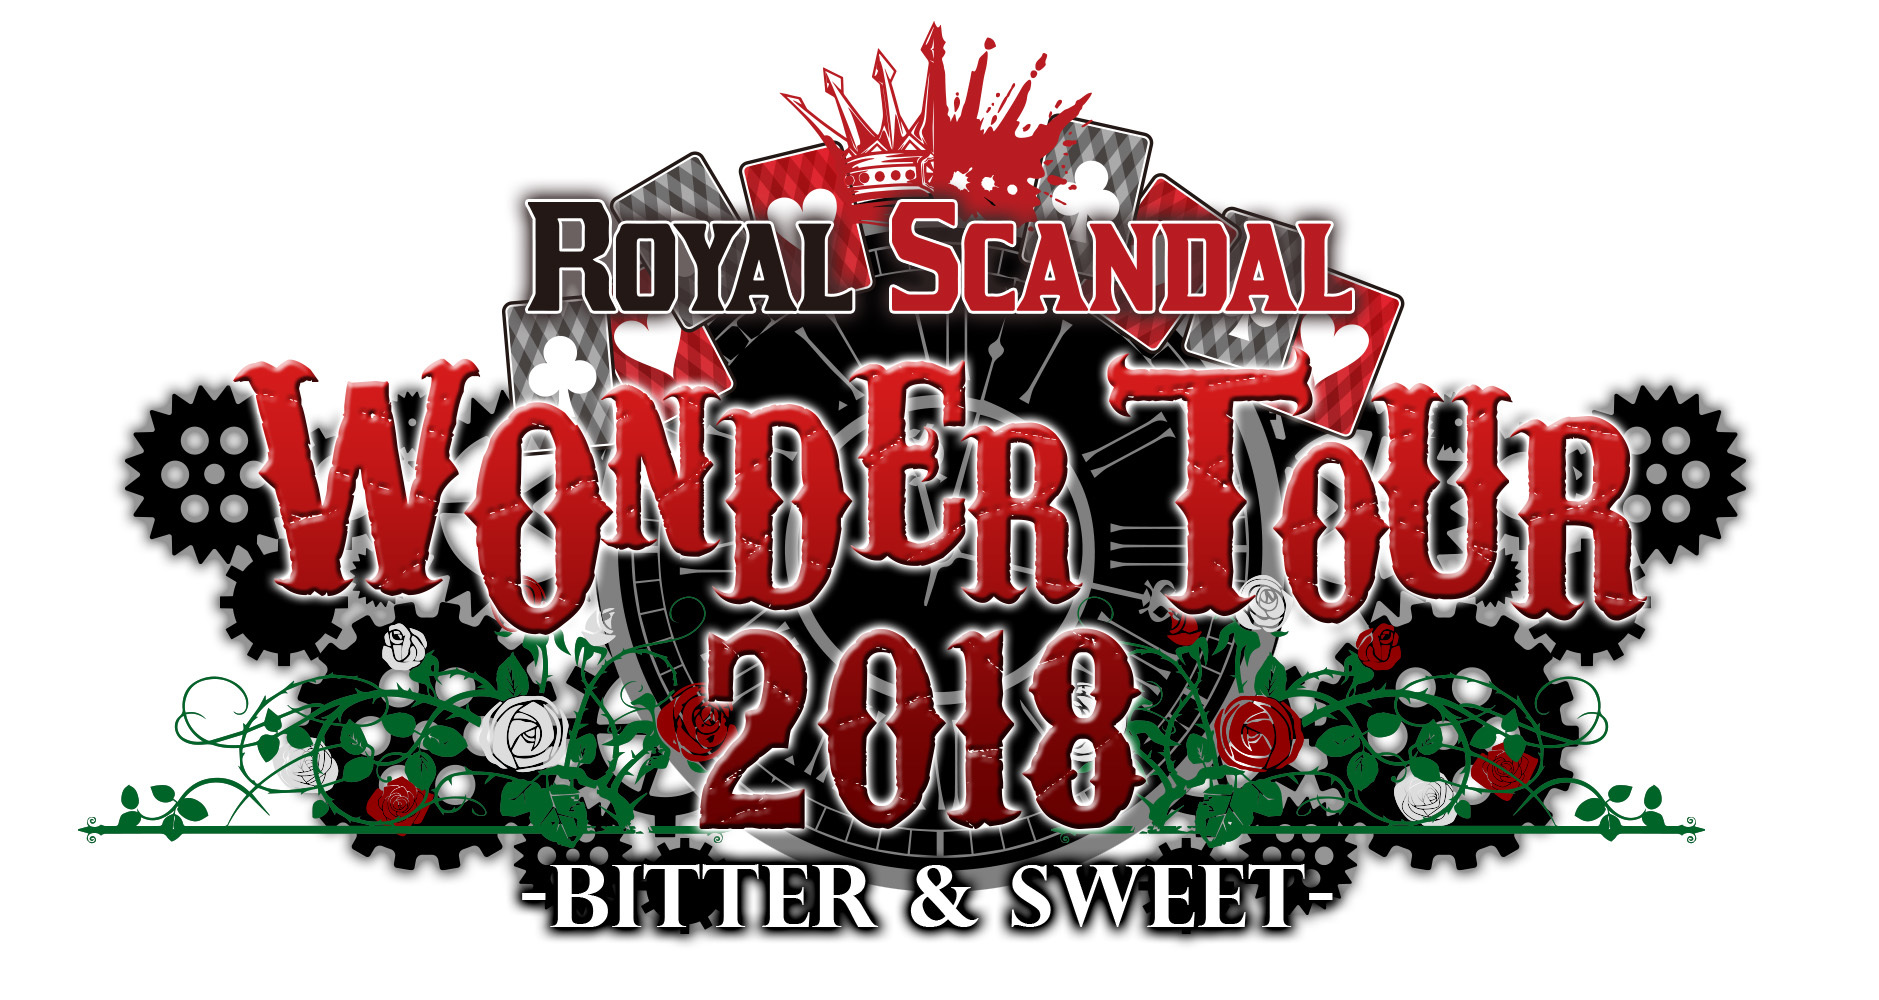 Royal Scandal